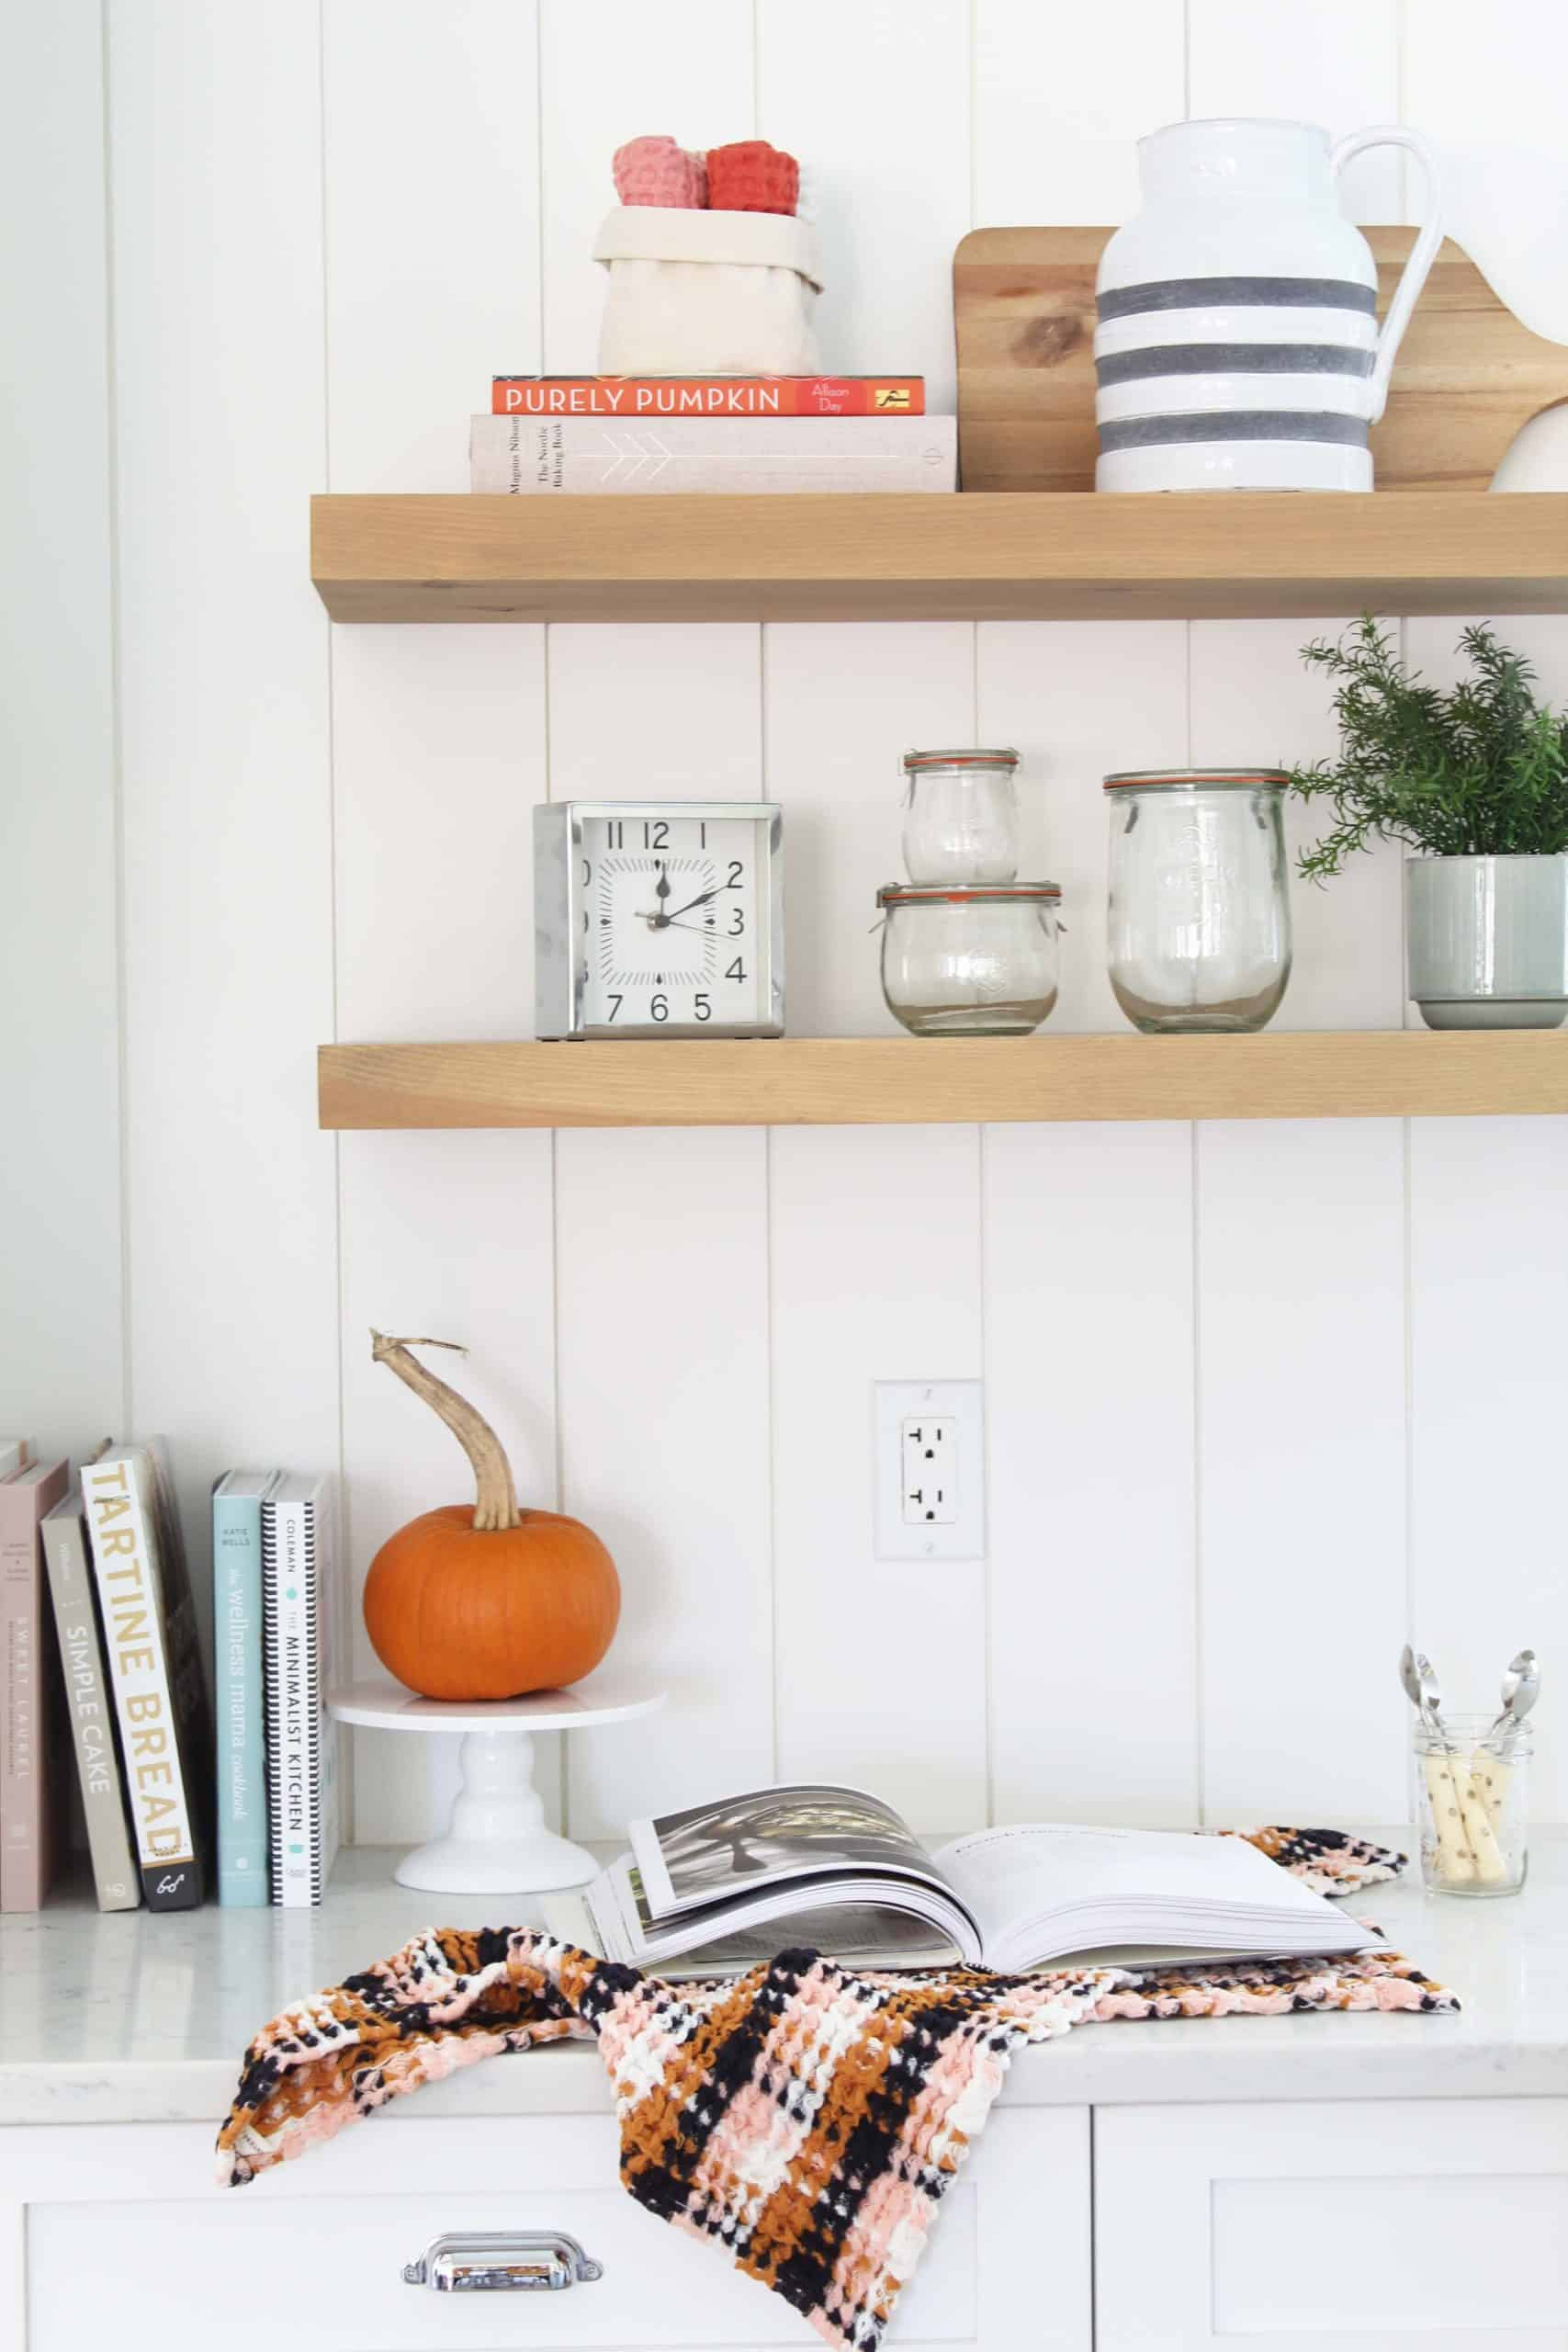 open kitchen shelving with wreck tulip jars, anthropologie dish cloths and striped pitcher, and pumpkin